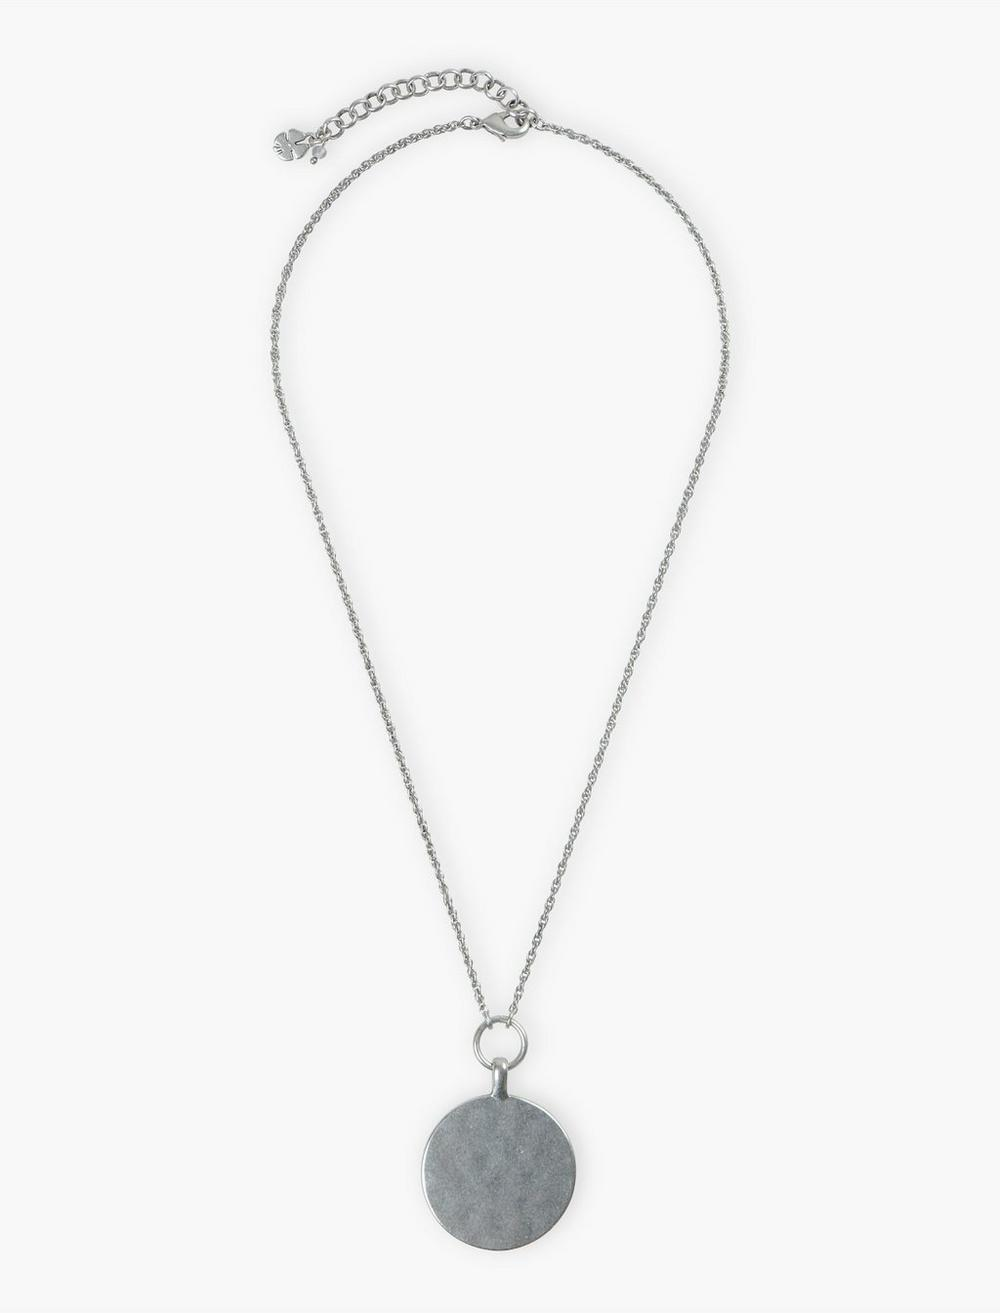 COIN PENDANT NECKLACE, image 1